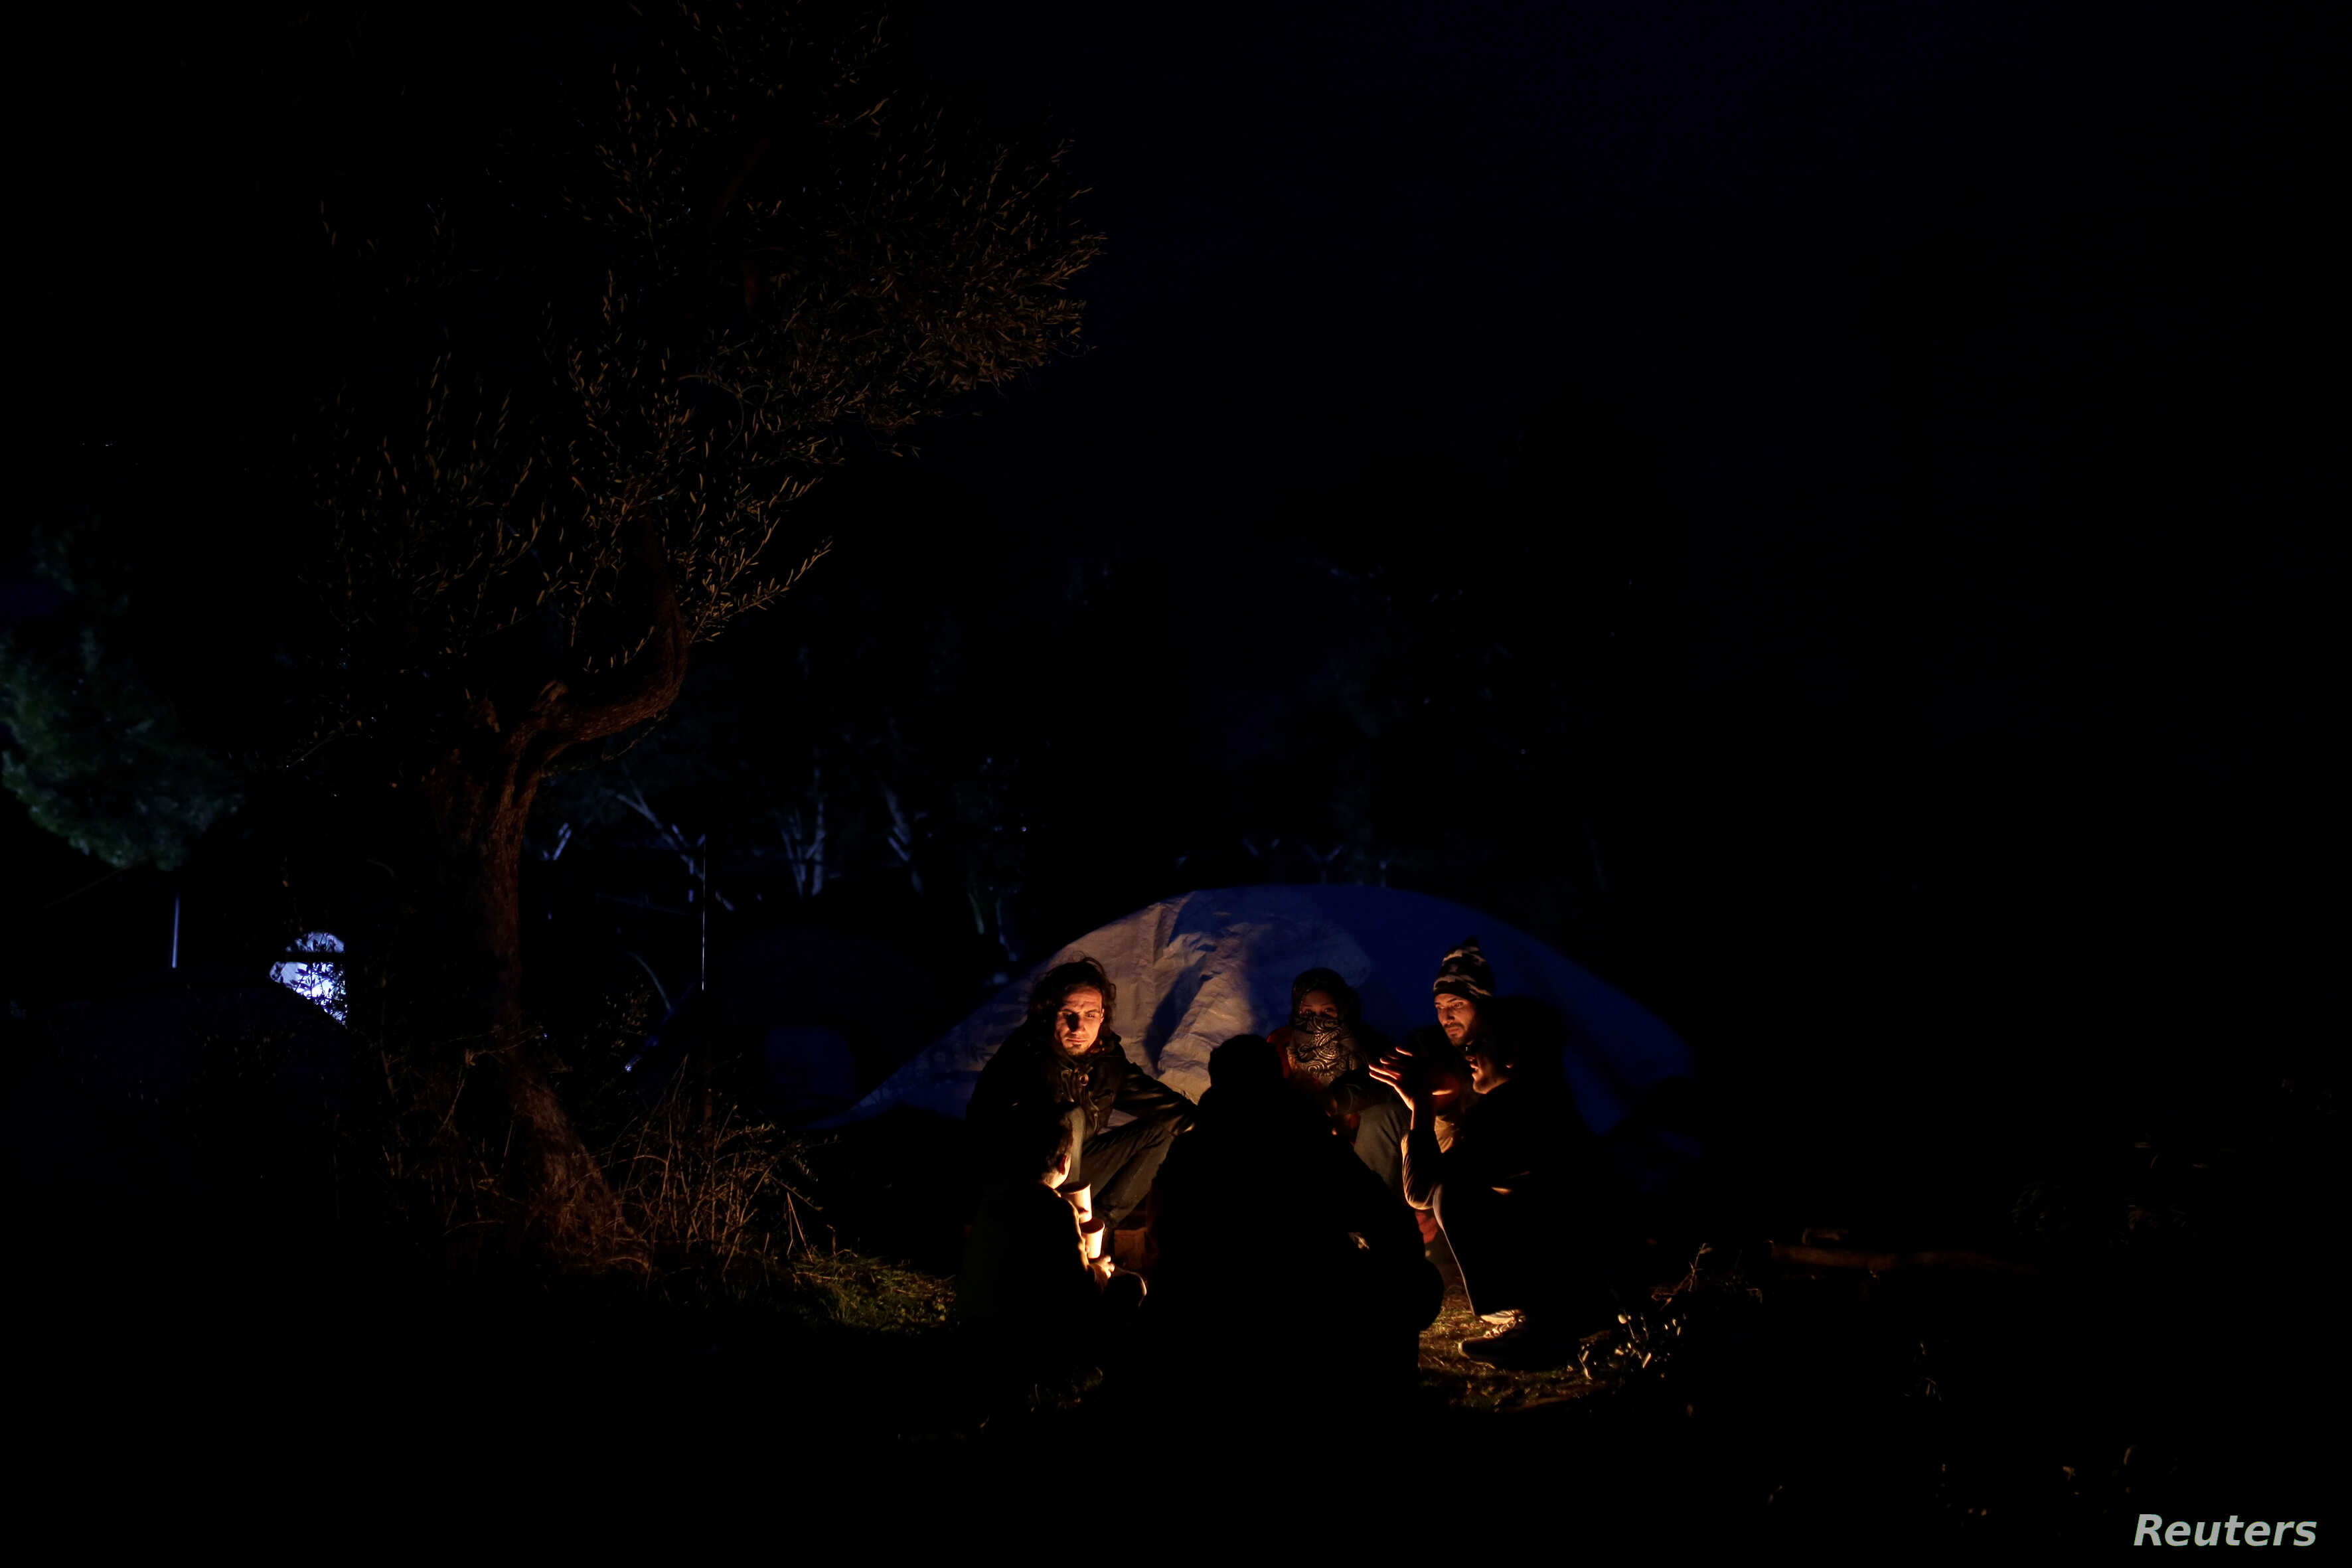 A Syrian family sits around a bonfire at a makeshift camp for refugees and migrants next to the Moria camp on the island of Lesbos, Greece, Nov. 30, 2017.